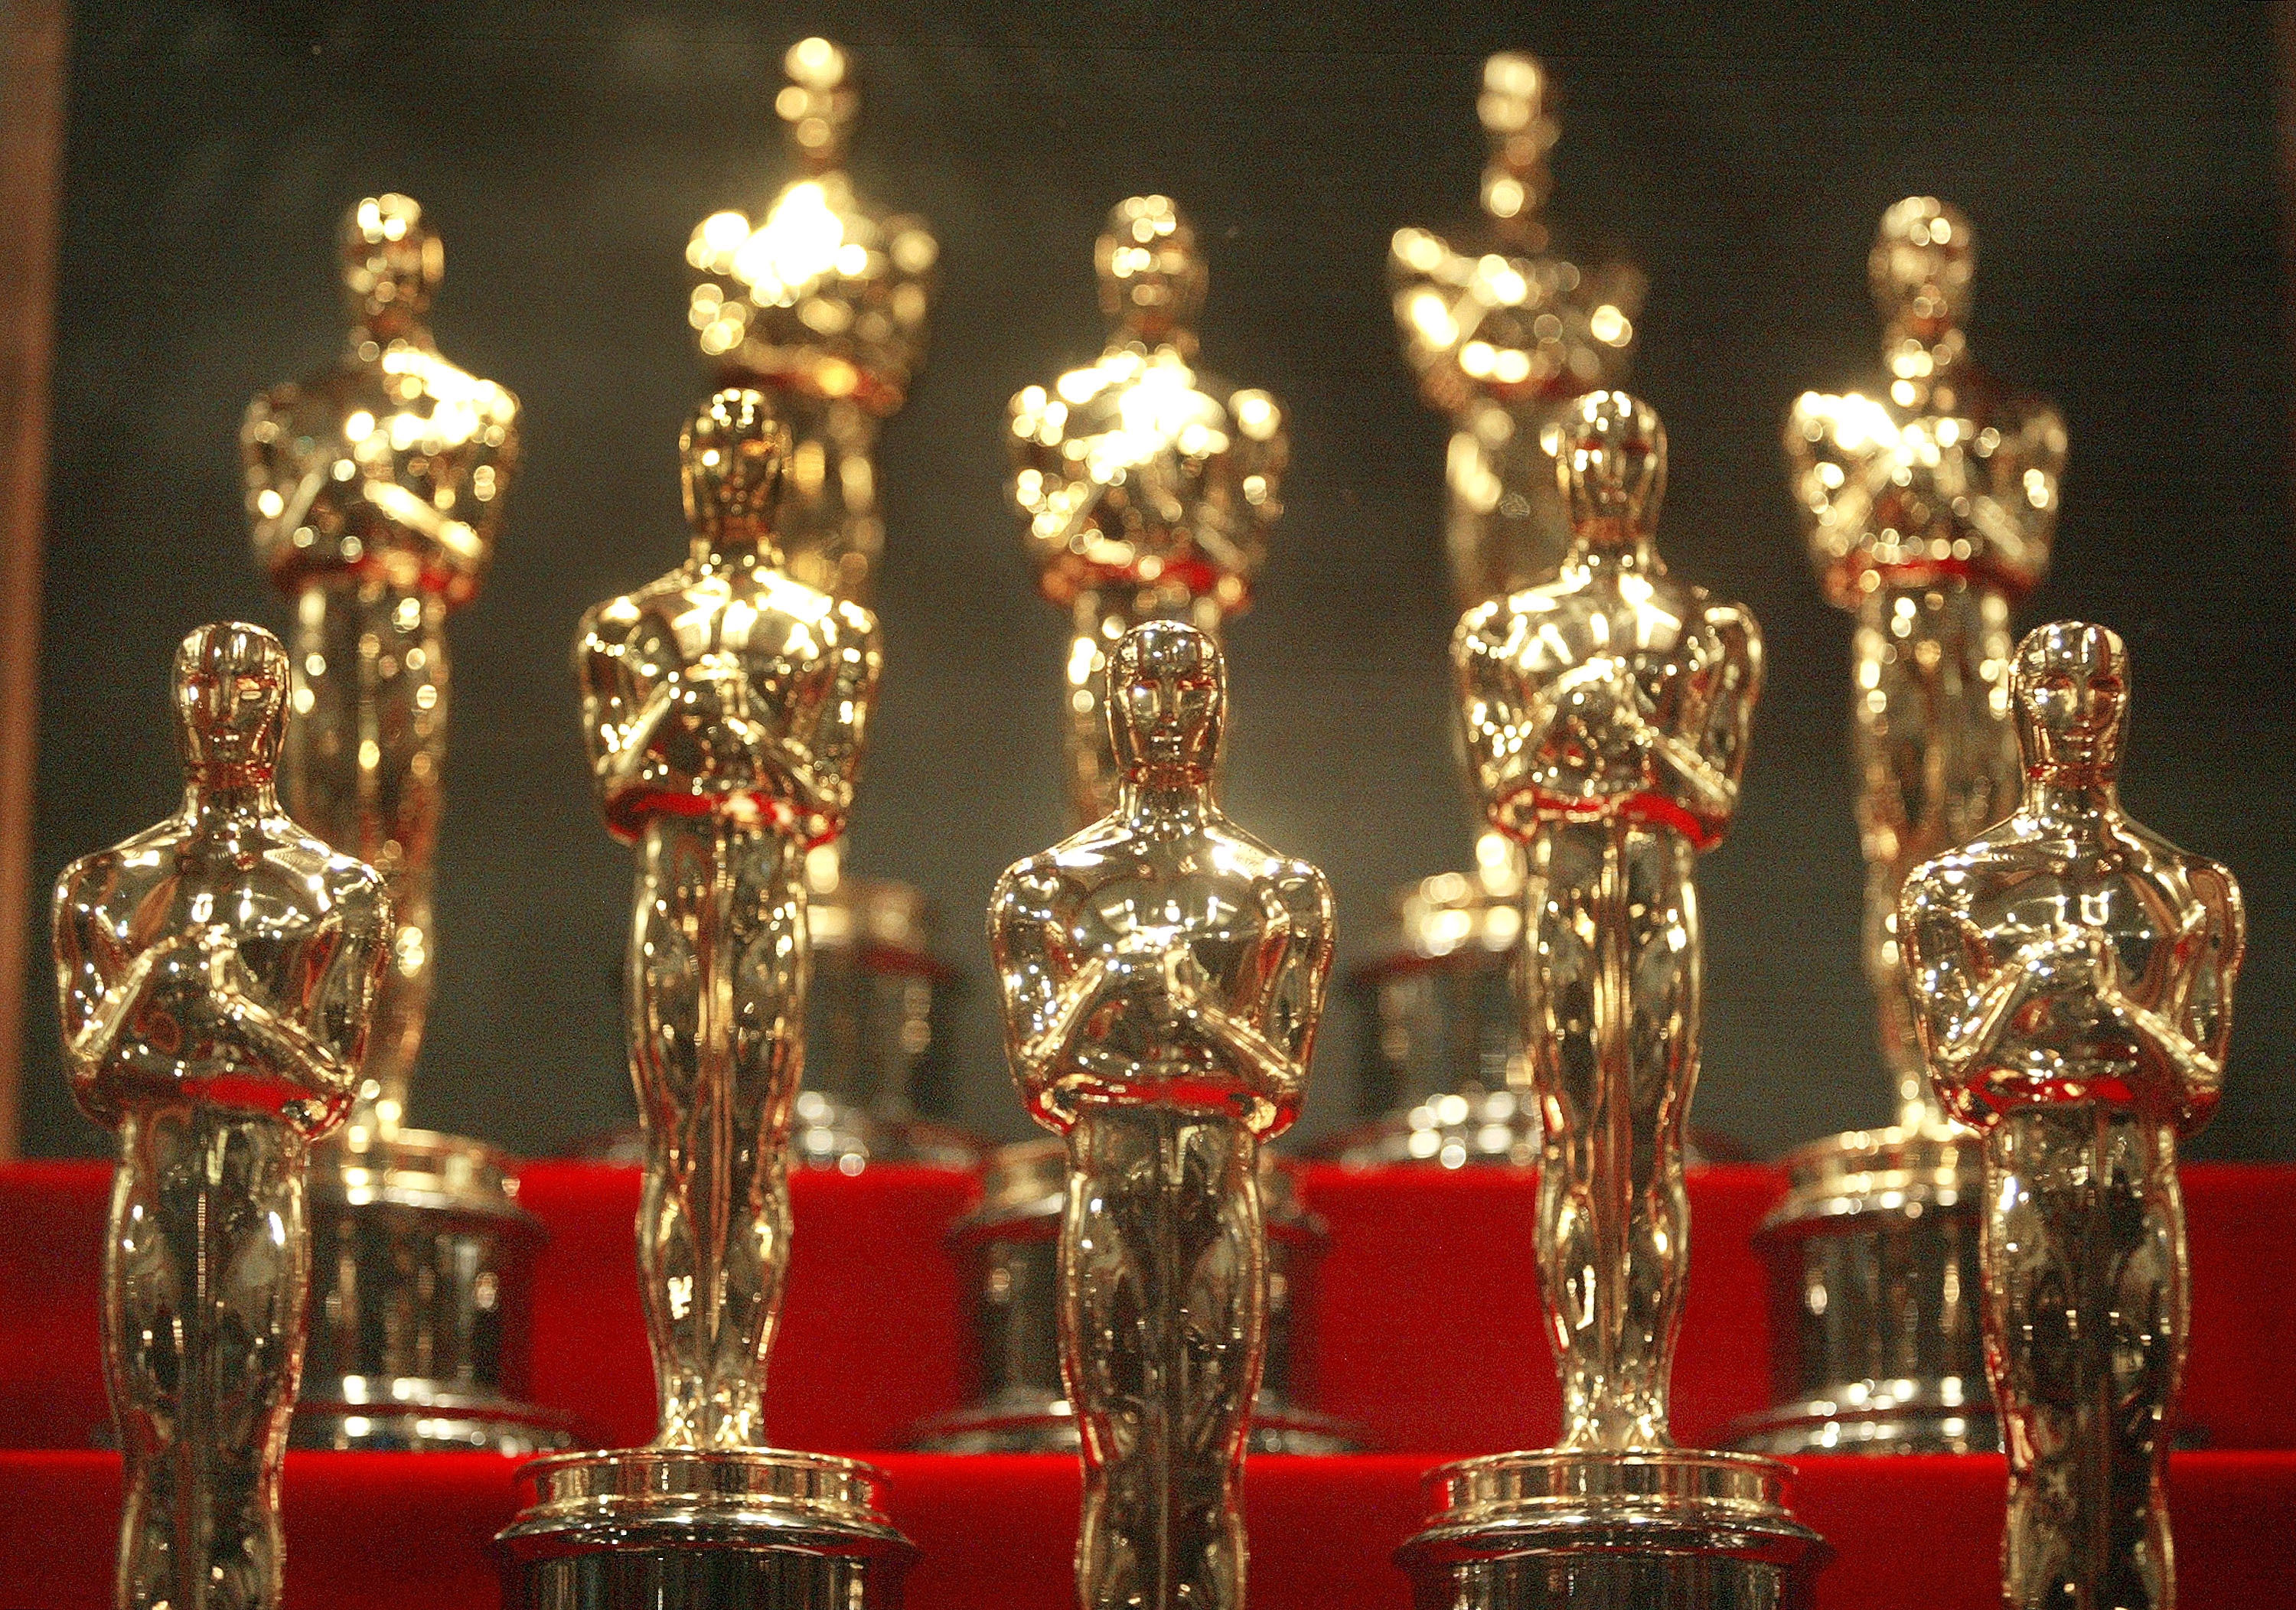 Oscar statuettes are displayed at the Museum of Science and Industry in Chicago, Illinois.